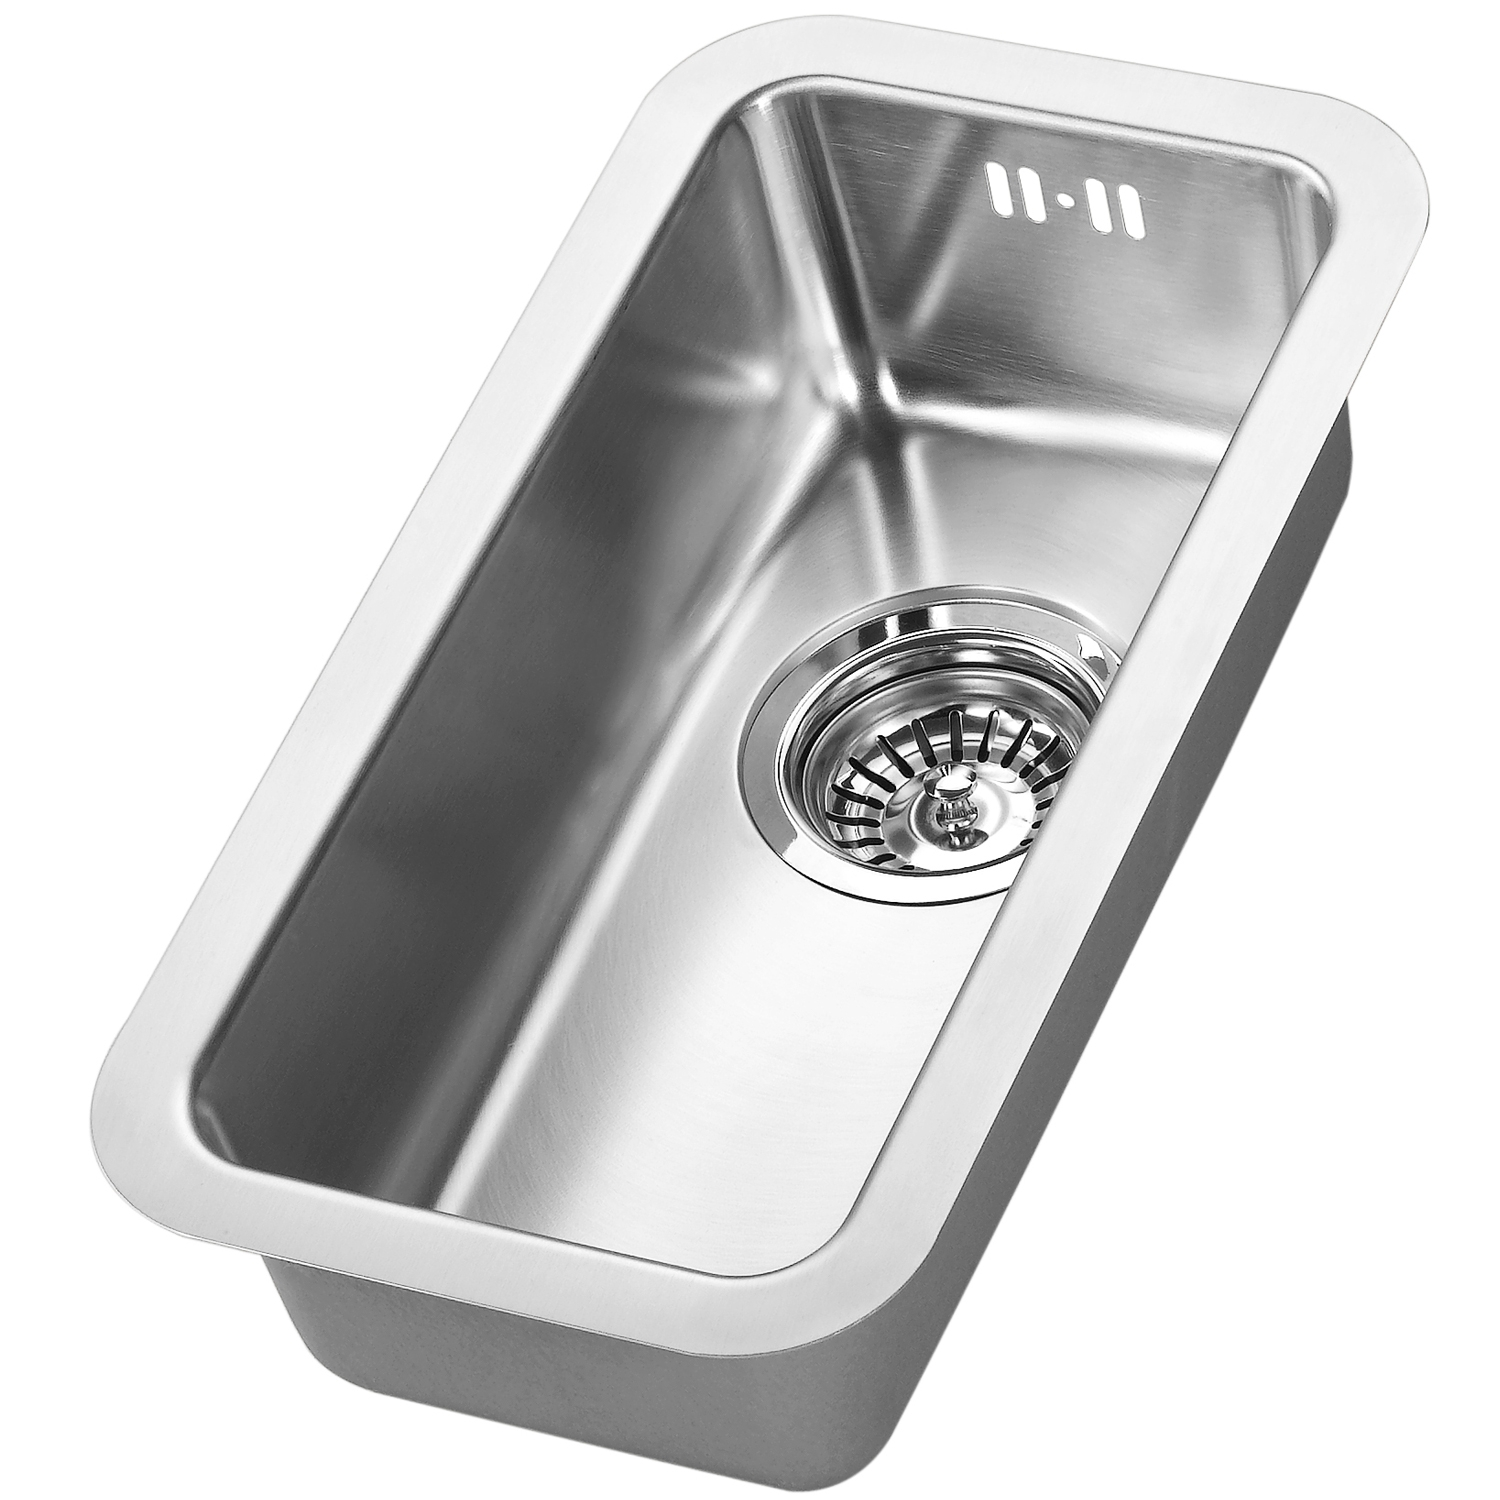 The 1810 Company Luxsouno25 180U 1.0 Bowl Kitchen Sink - Stainless Steel-0